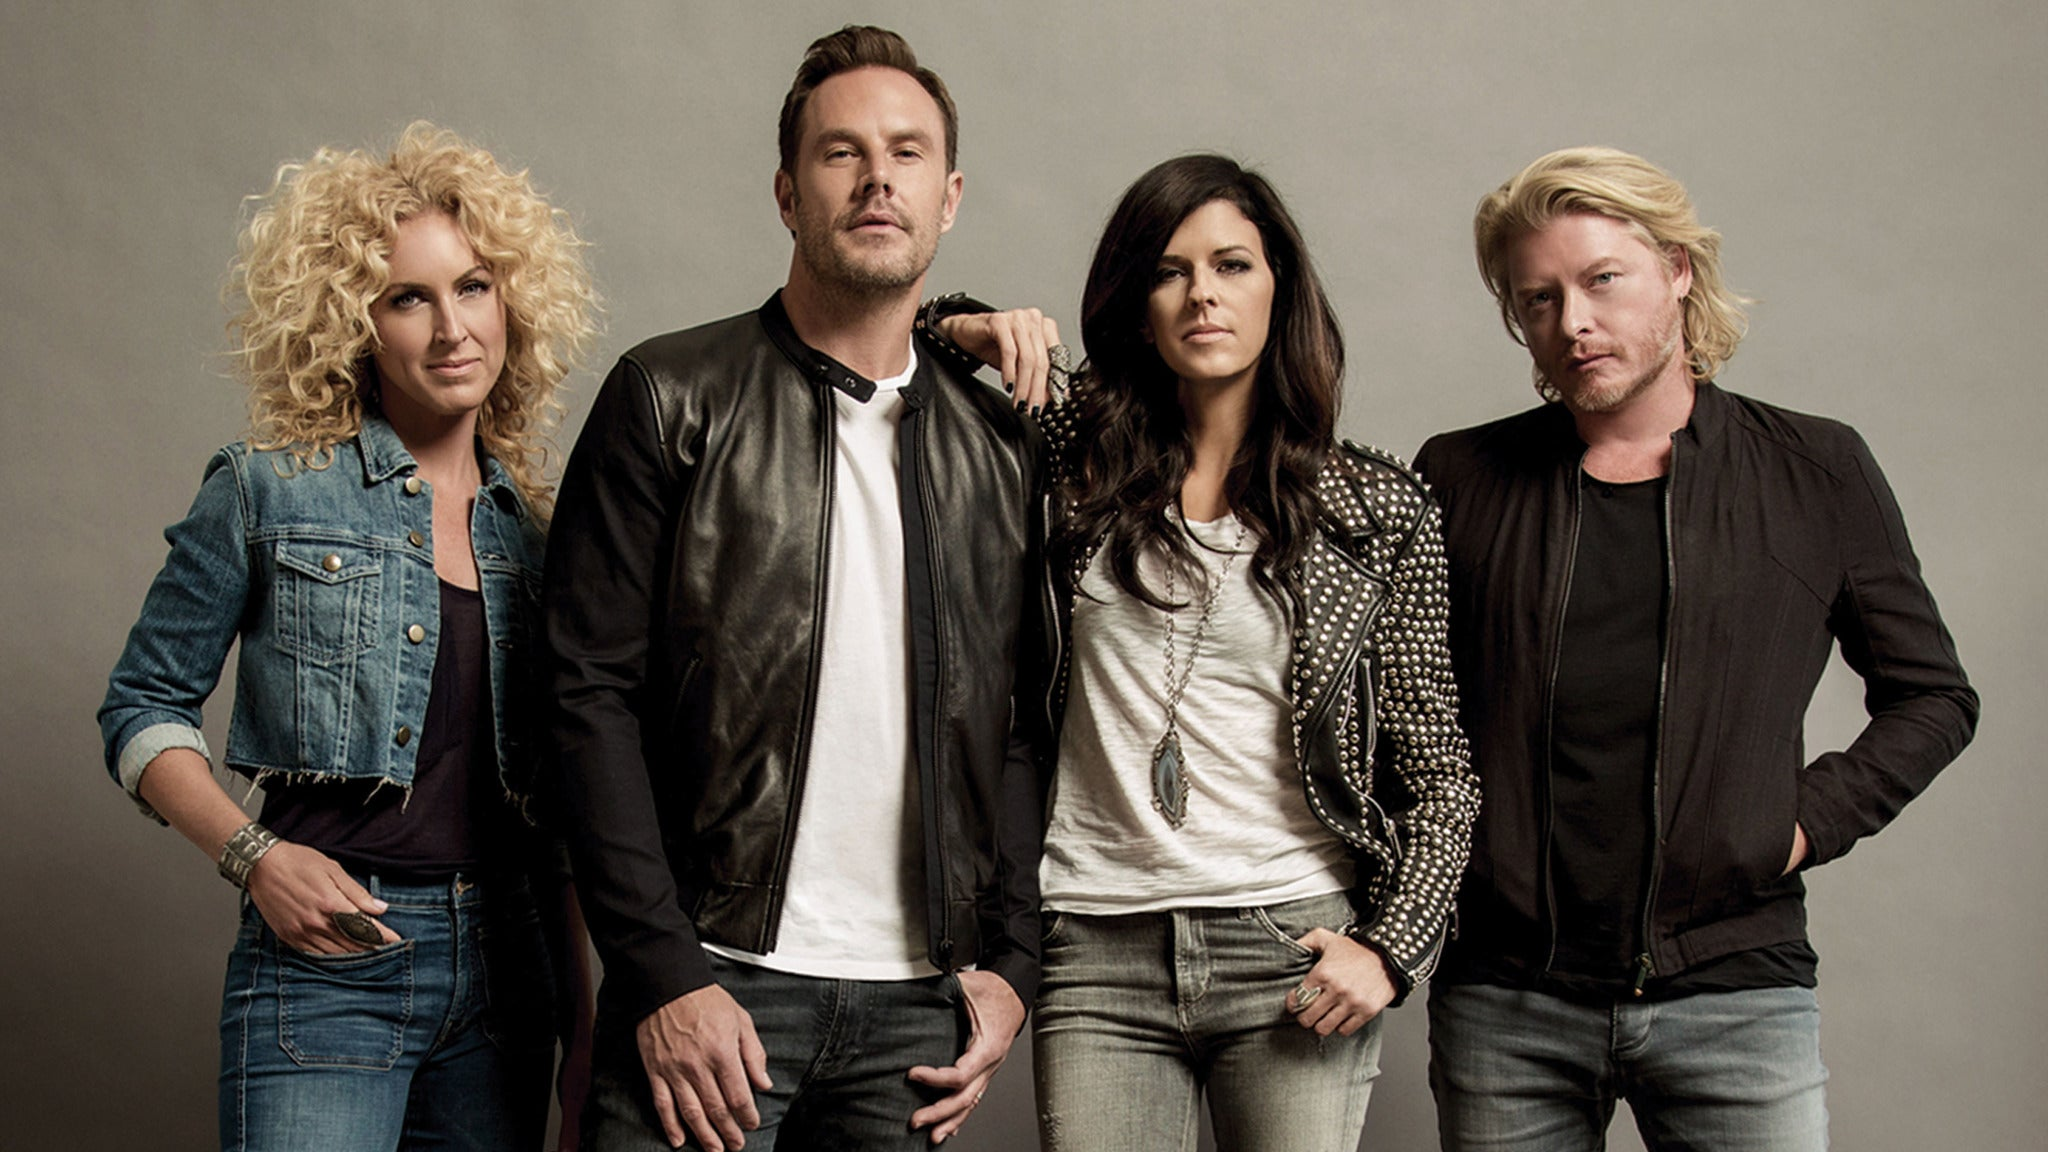 Little Big Town: The Breakers Tour at U.S. Cellular Center